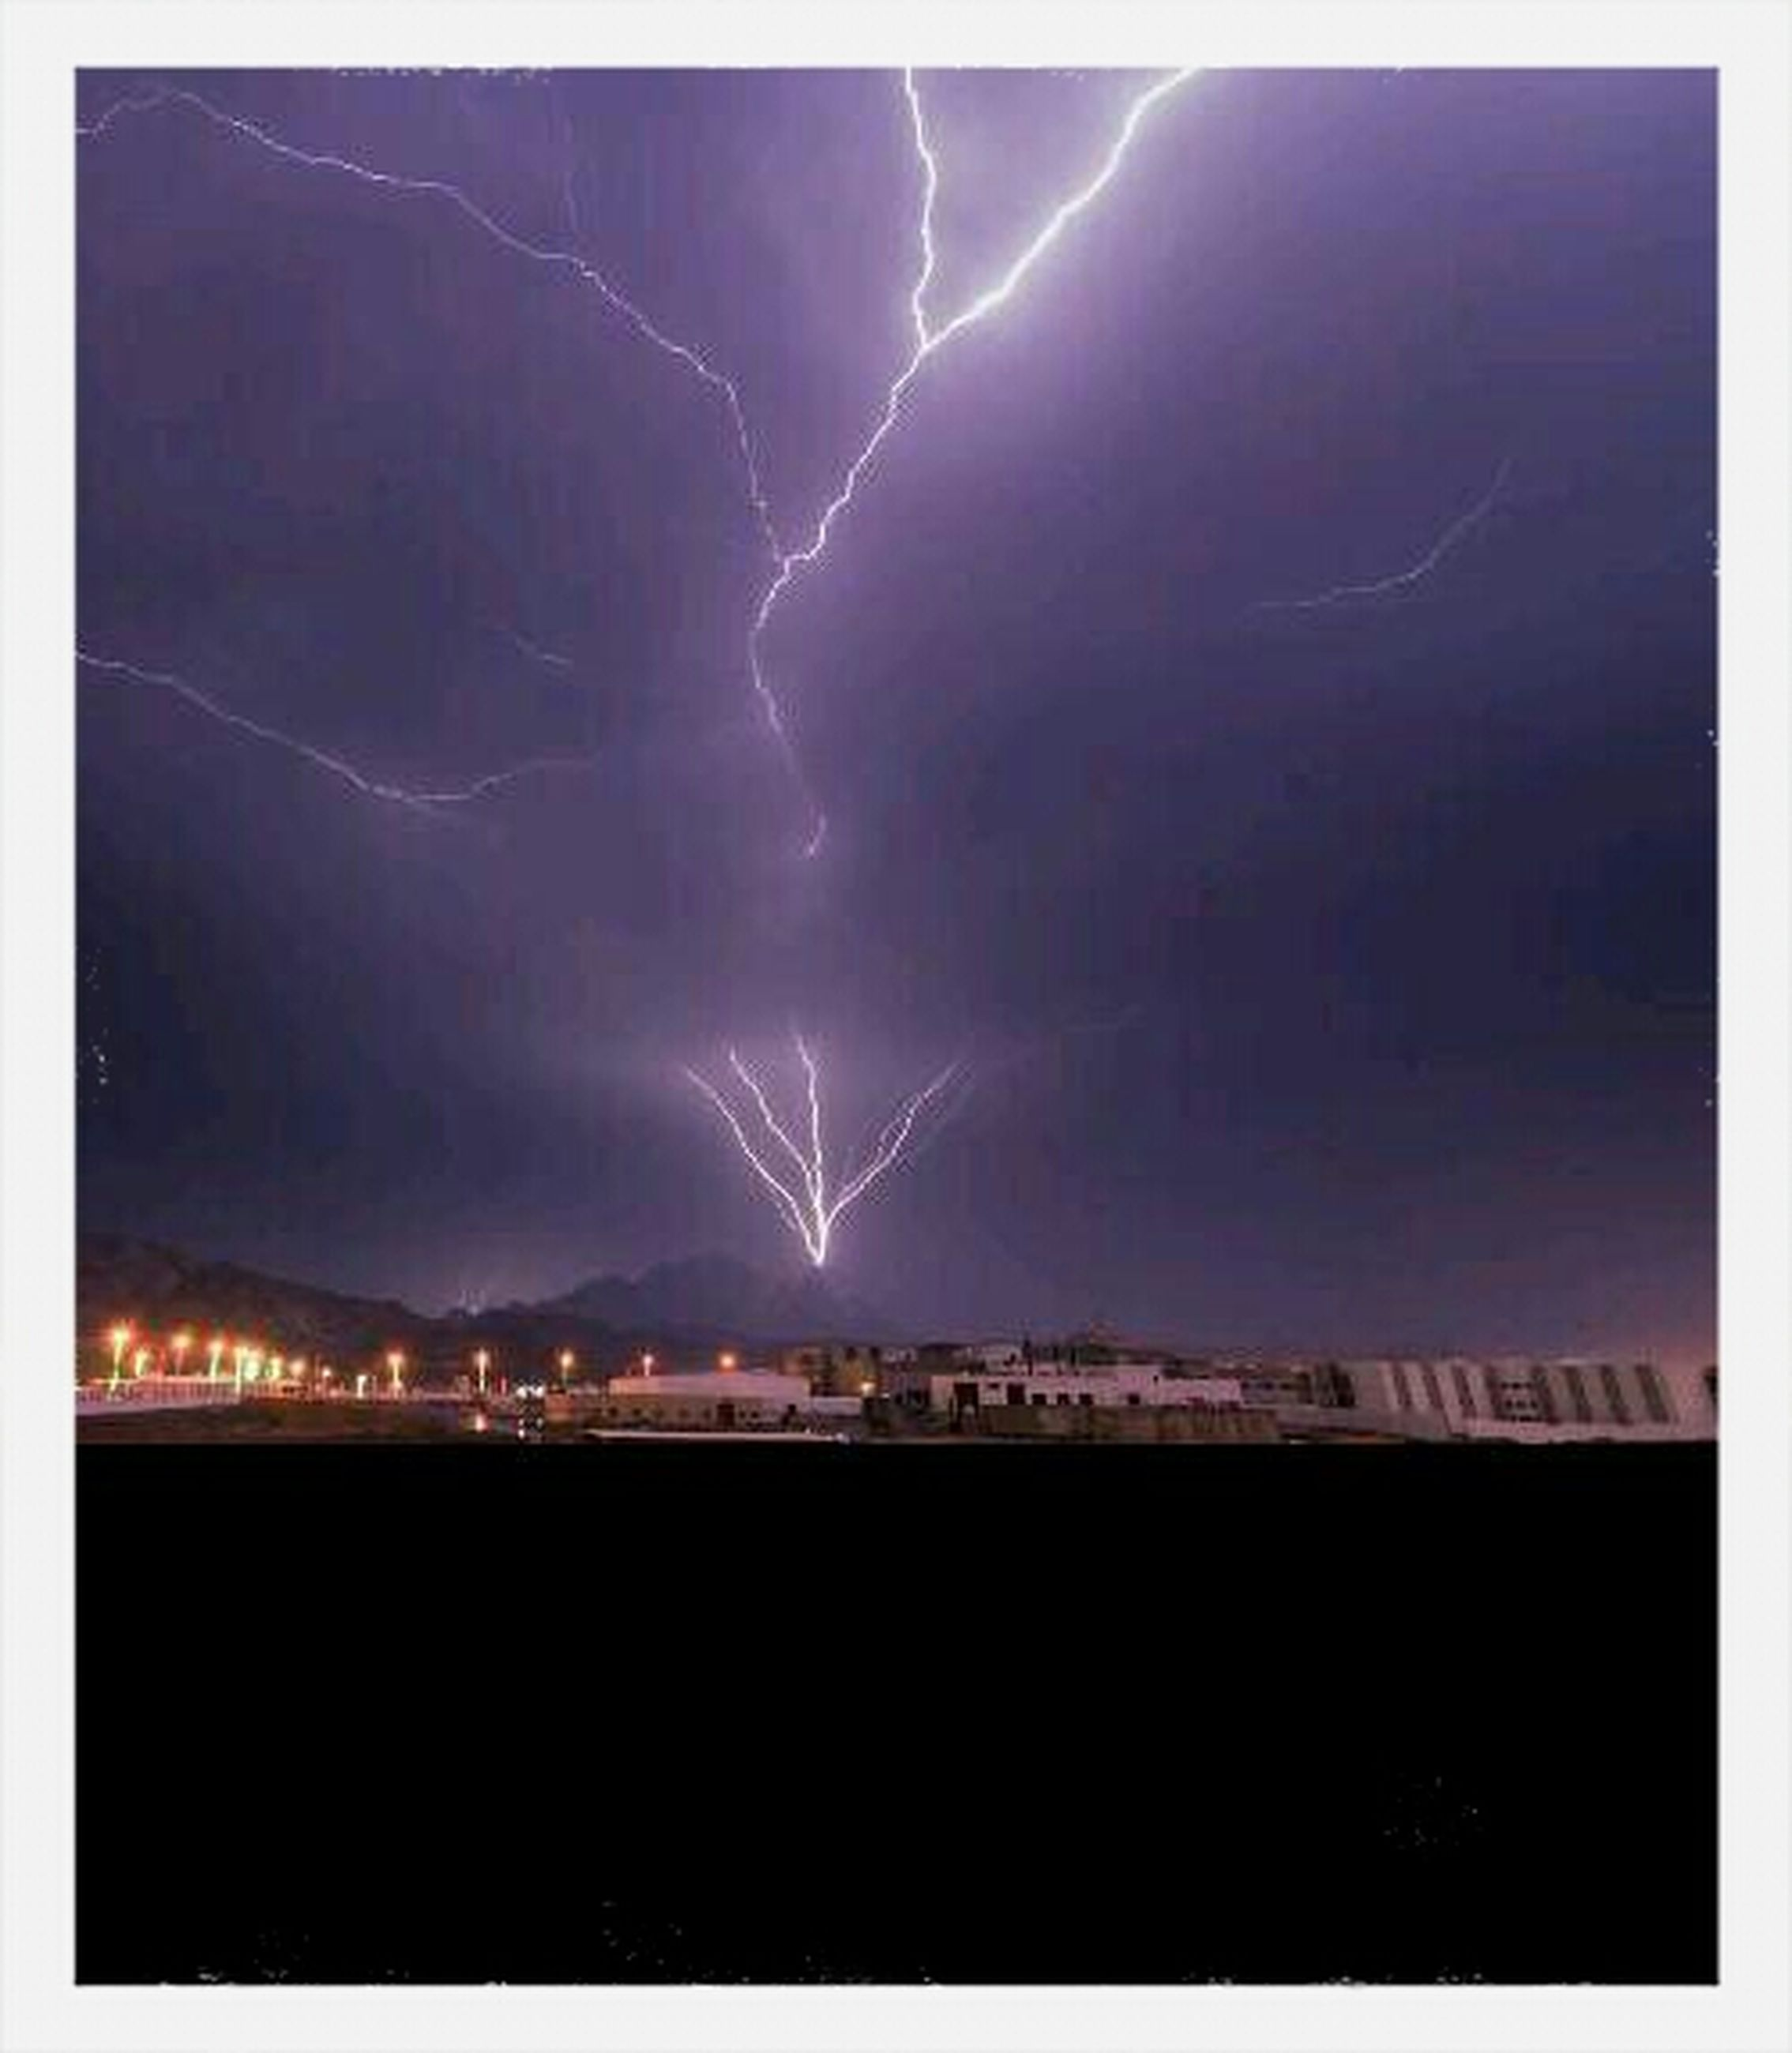 night, illuminated, sky, scenics, power in nature, mountain, beauty in nature, lightning, thunderstorm, built structure, dark, nature, electricity, light, building exterior, cityscape, city, architecture, light - natural phenomenon, glowing